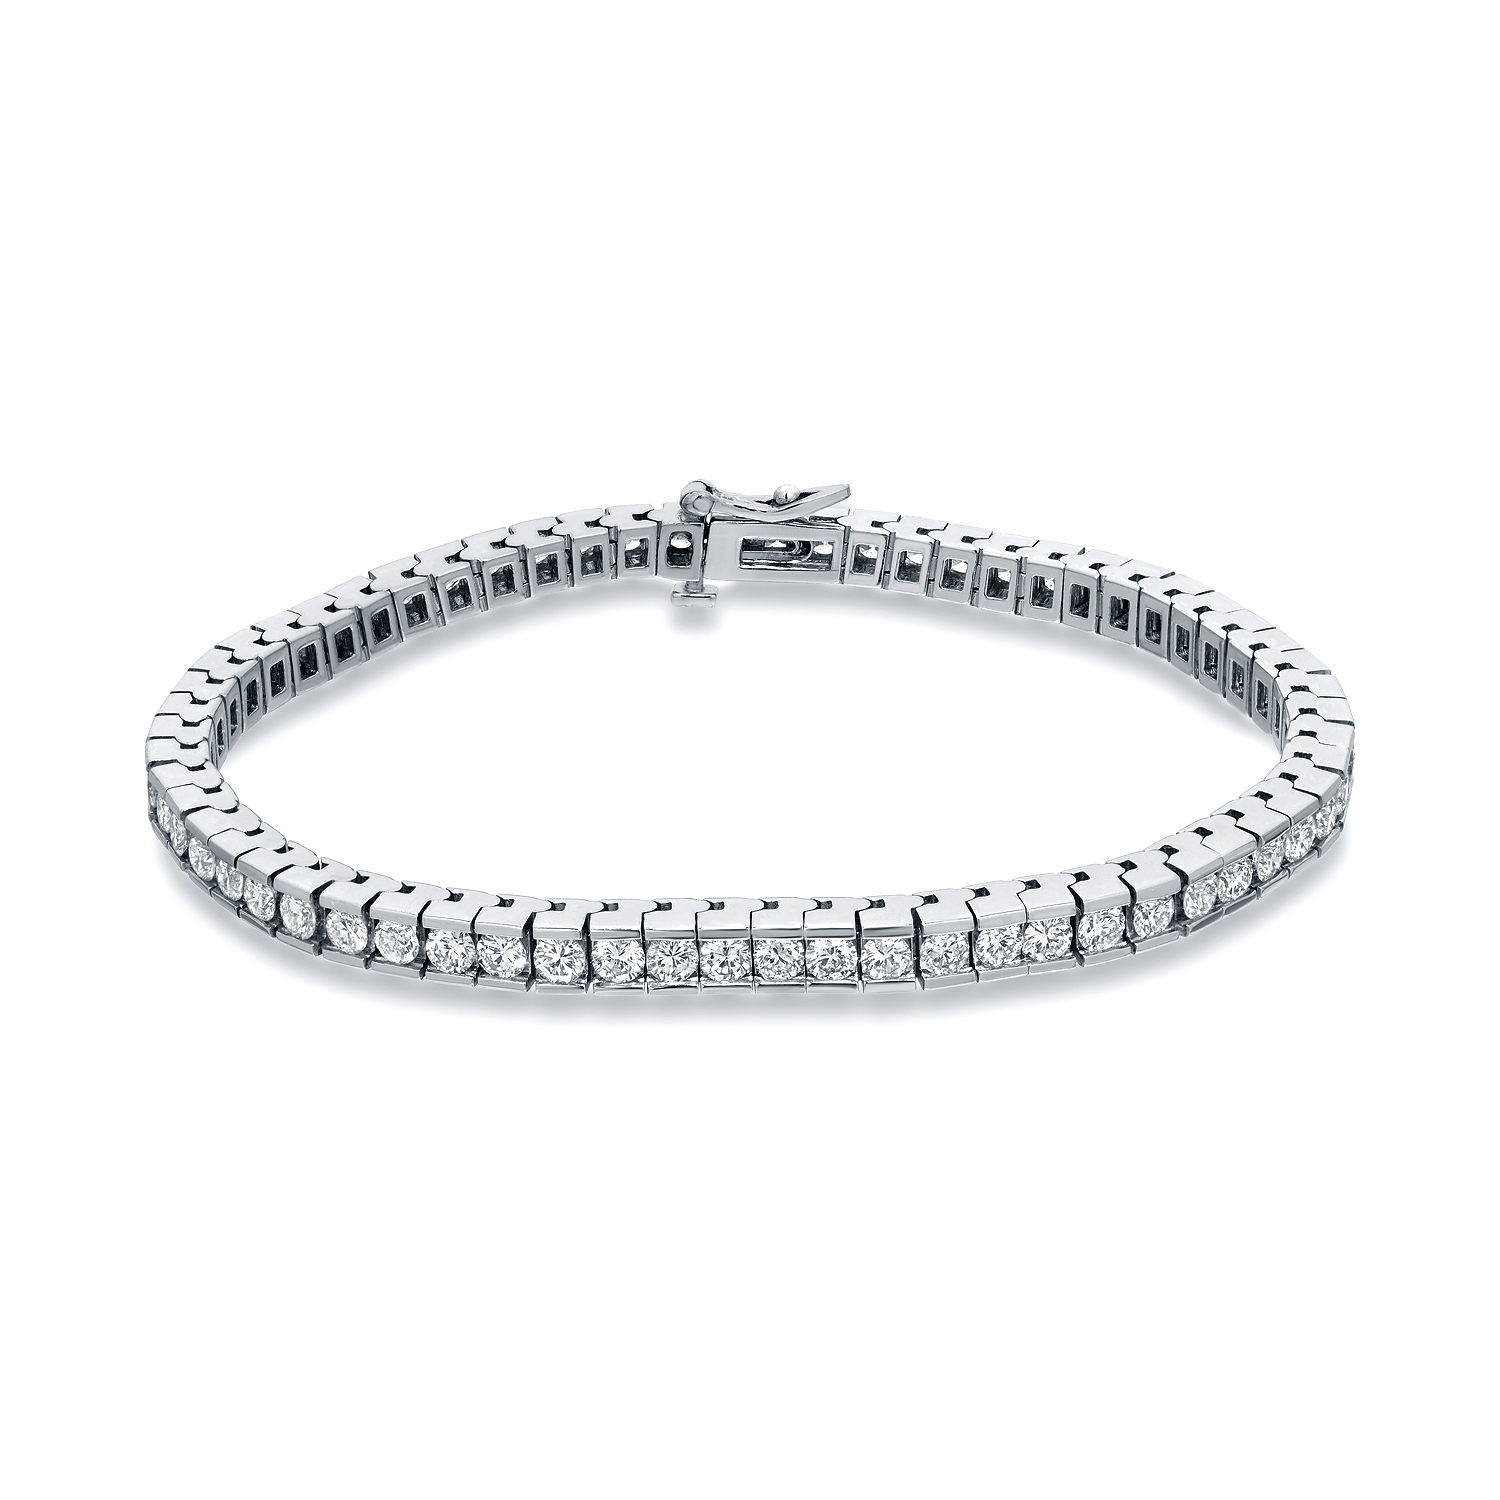 Certified 14k White Gold Channel Set Round Diamond Tennis Bracelet 2.00 ct. tw. (I-J, I1)